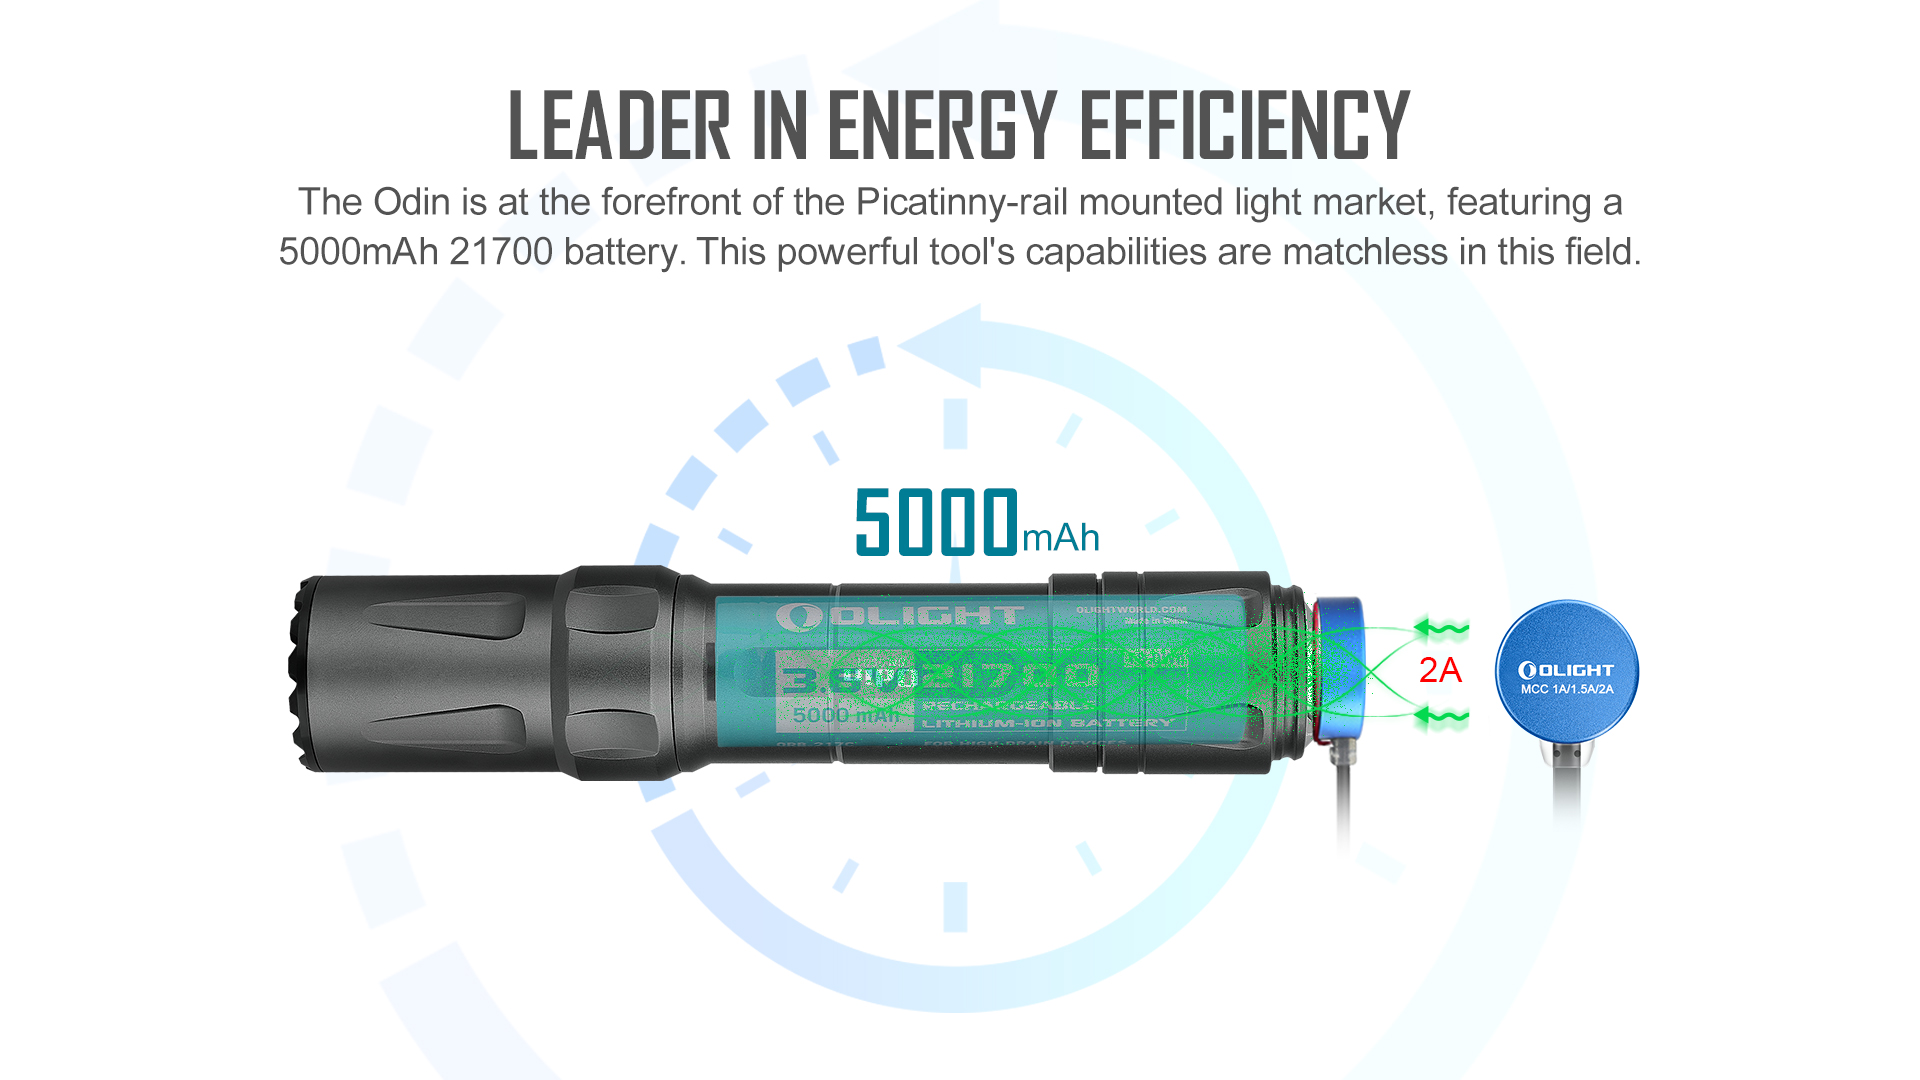 Olight Odin can provide 8 hours of runtime